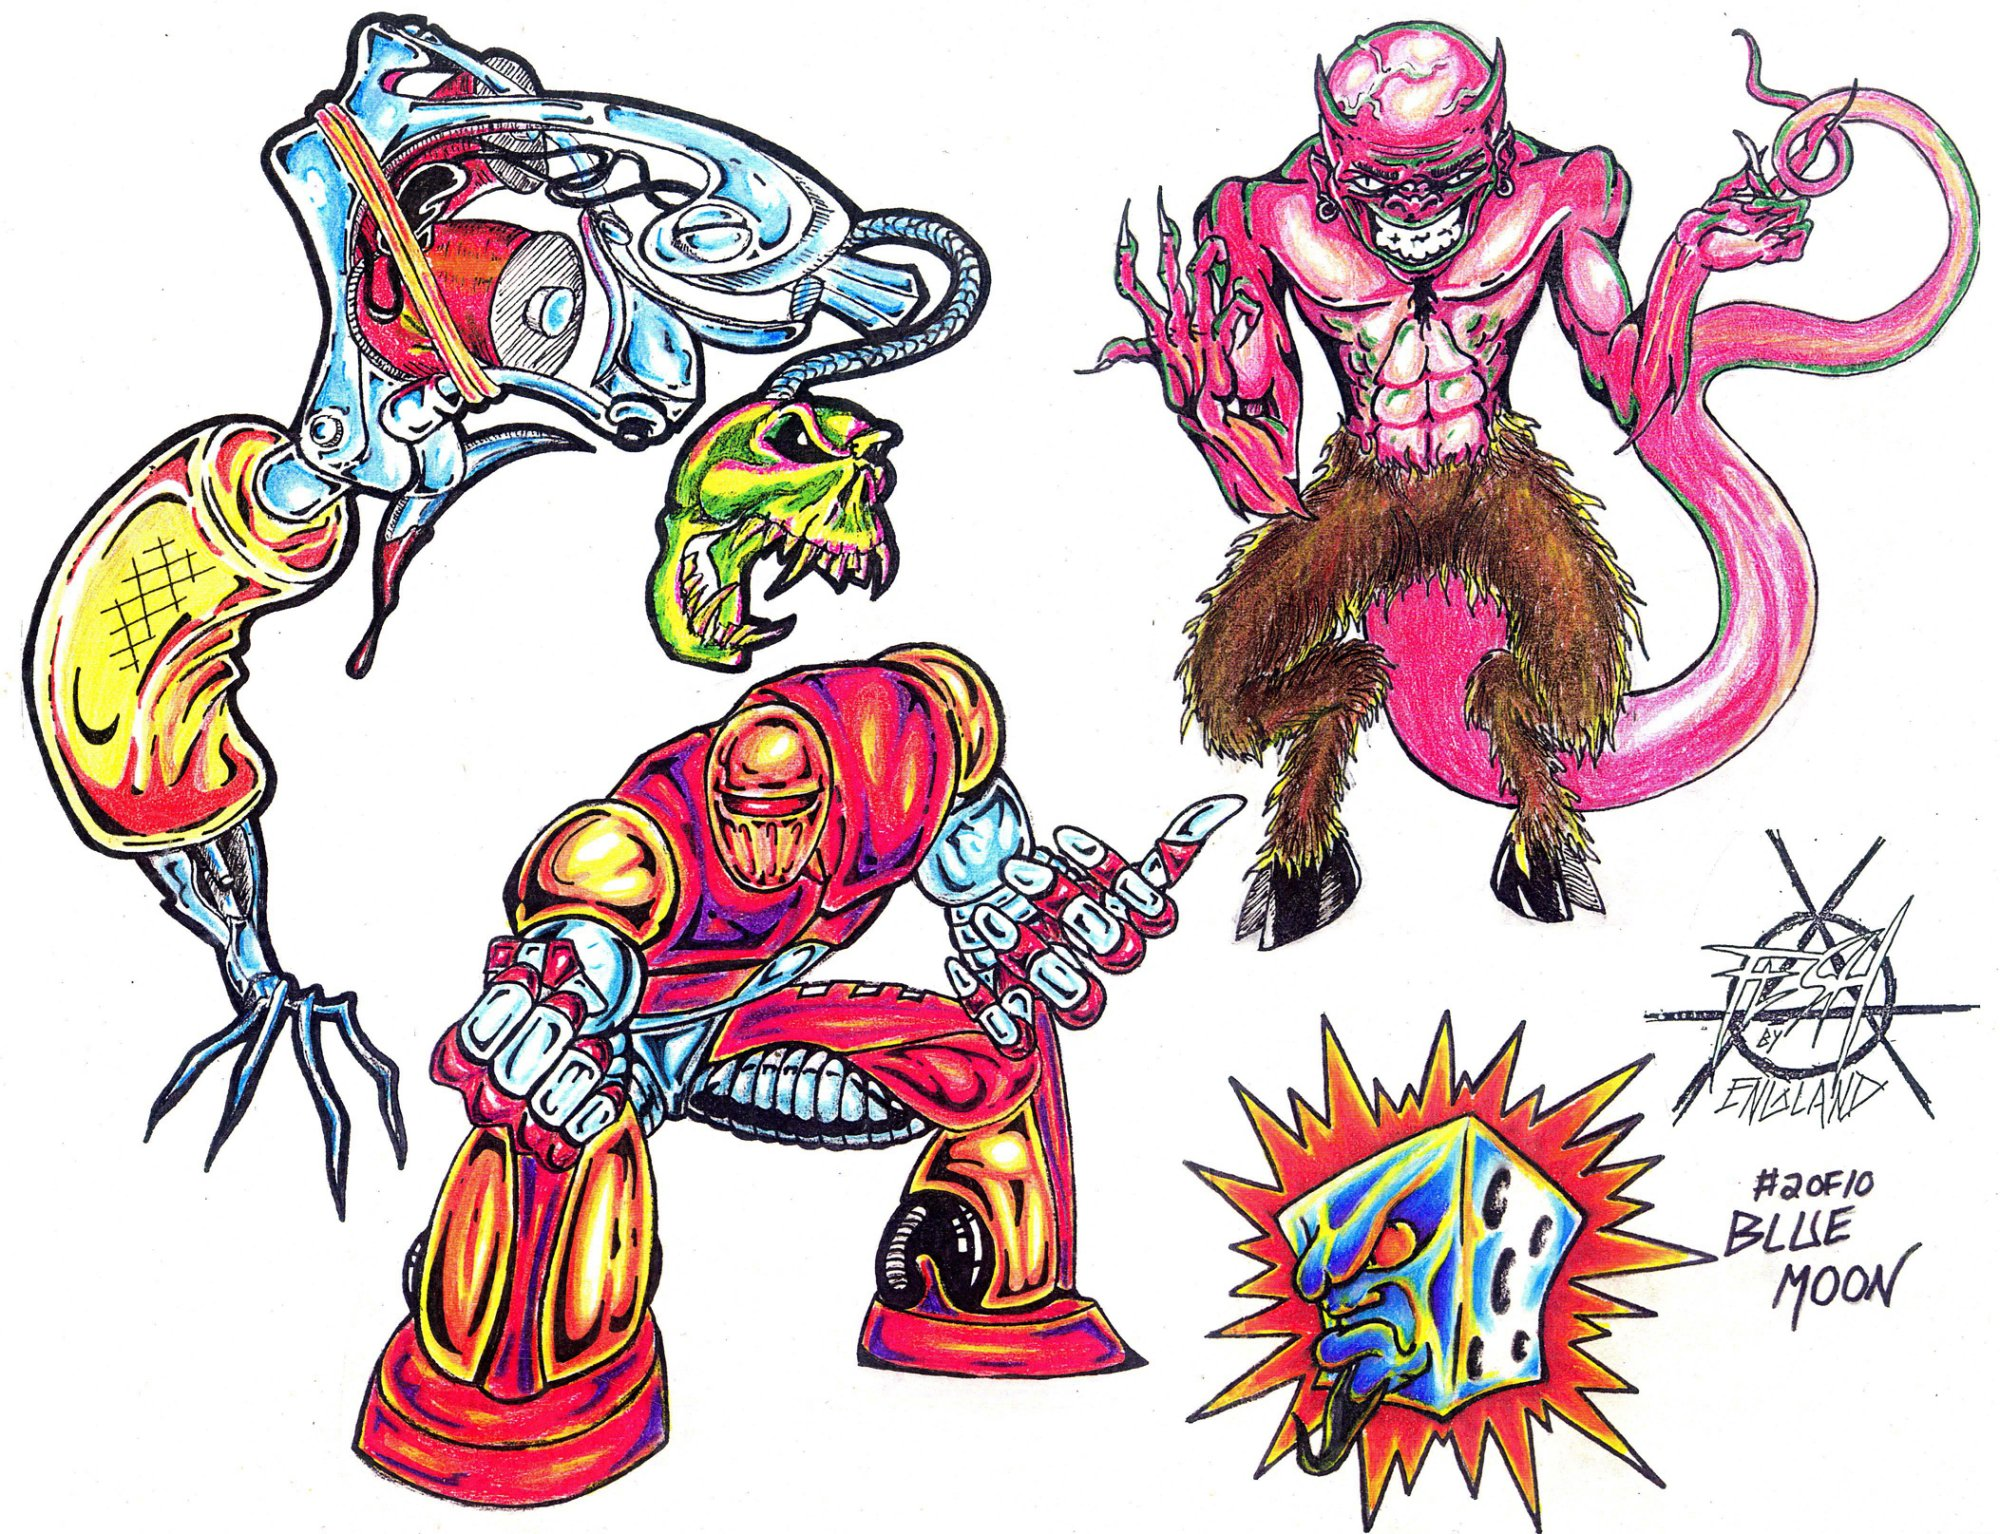 Monster tattoo designs by Blue Moon